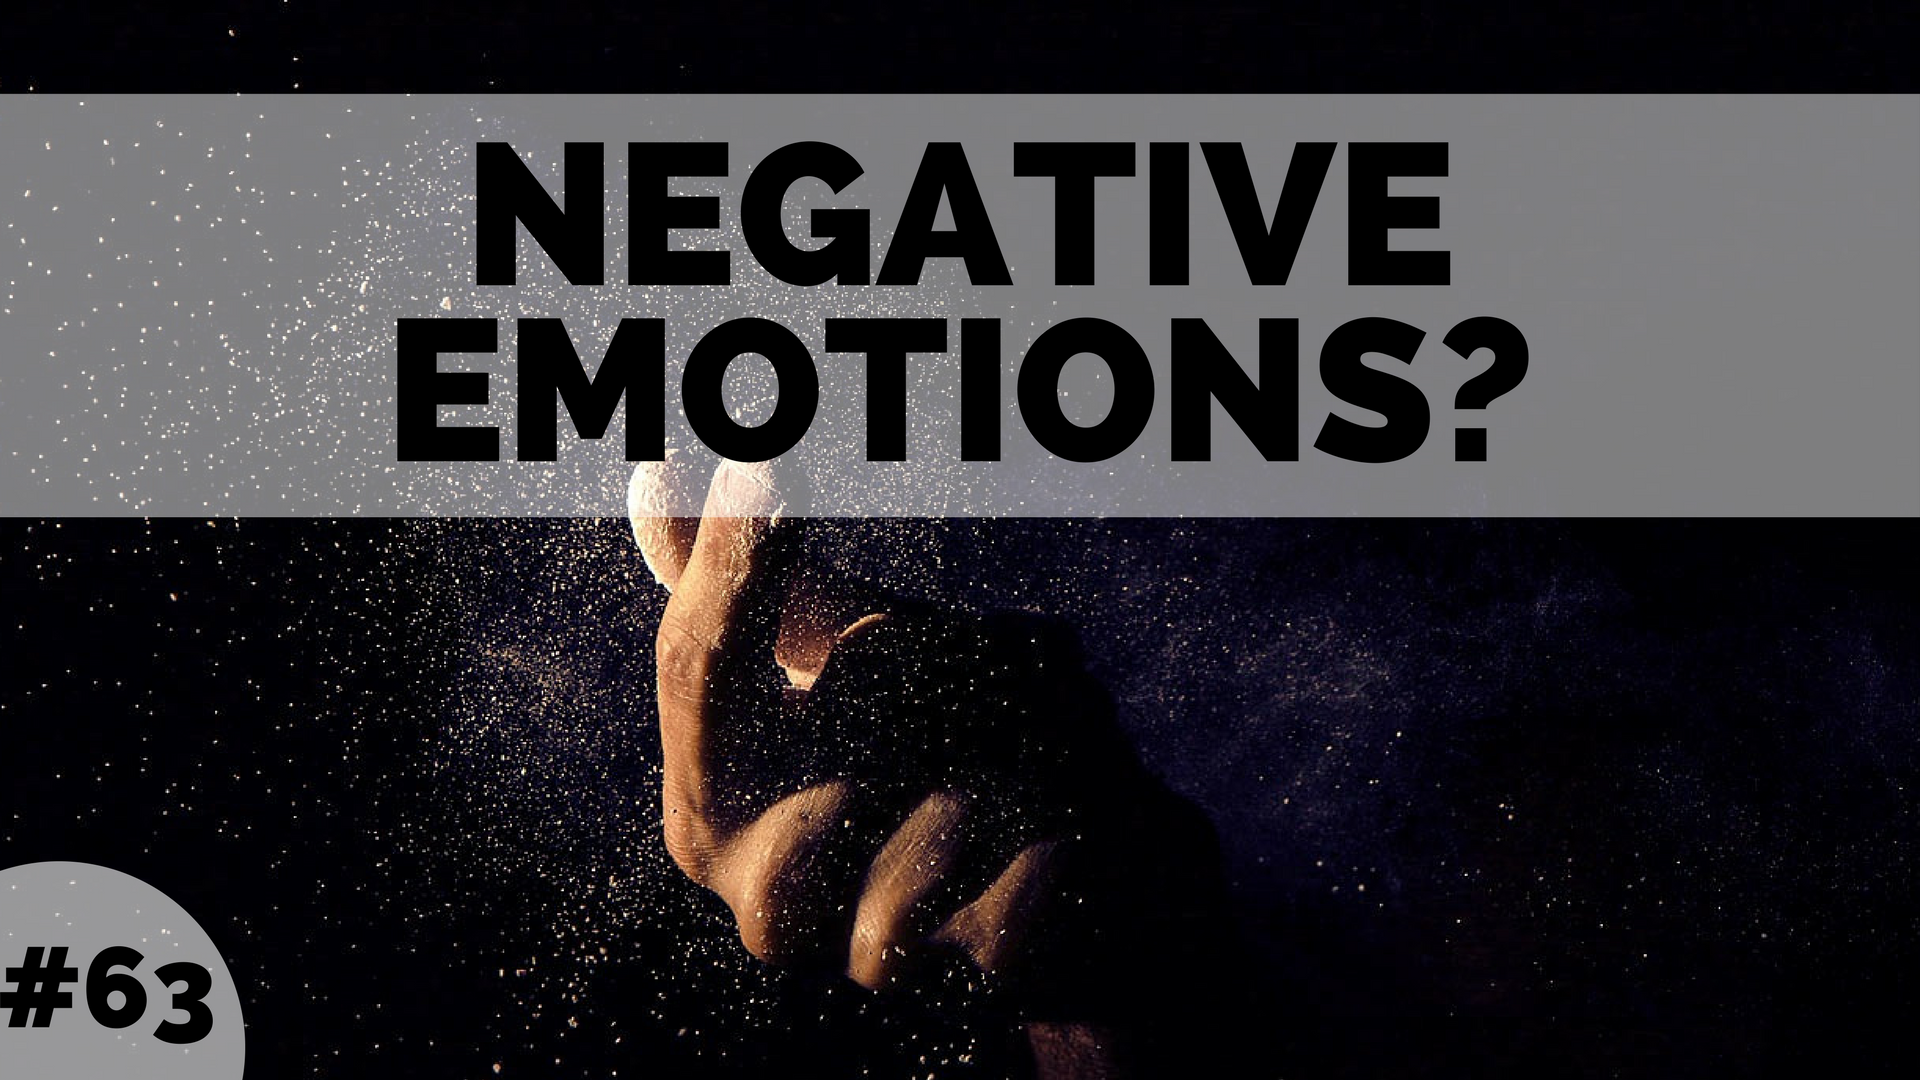 One Easy Way to Deal With Pain and Negative Emotions